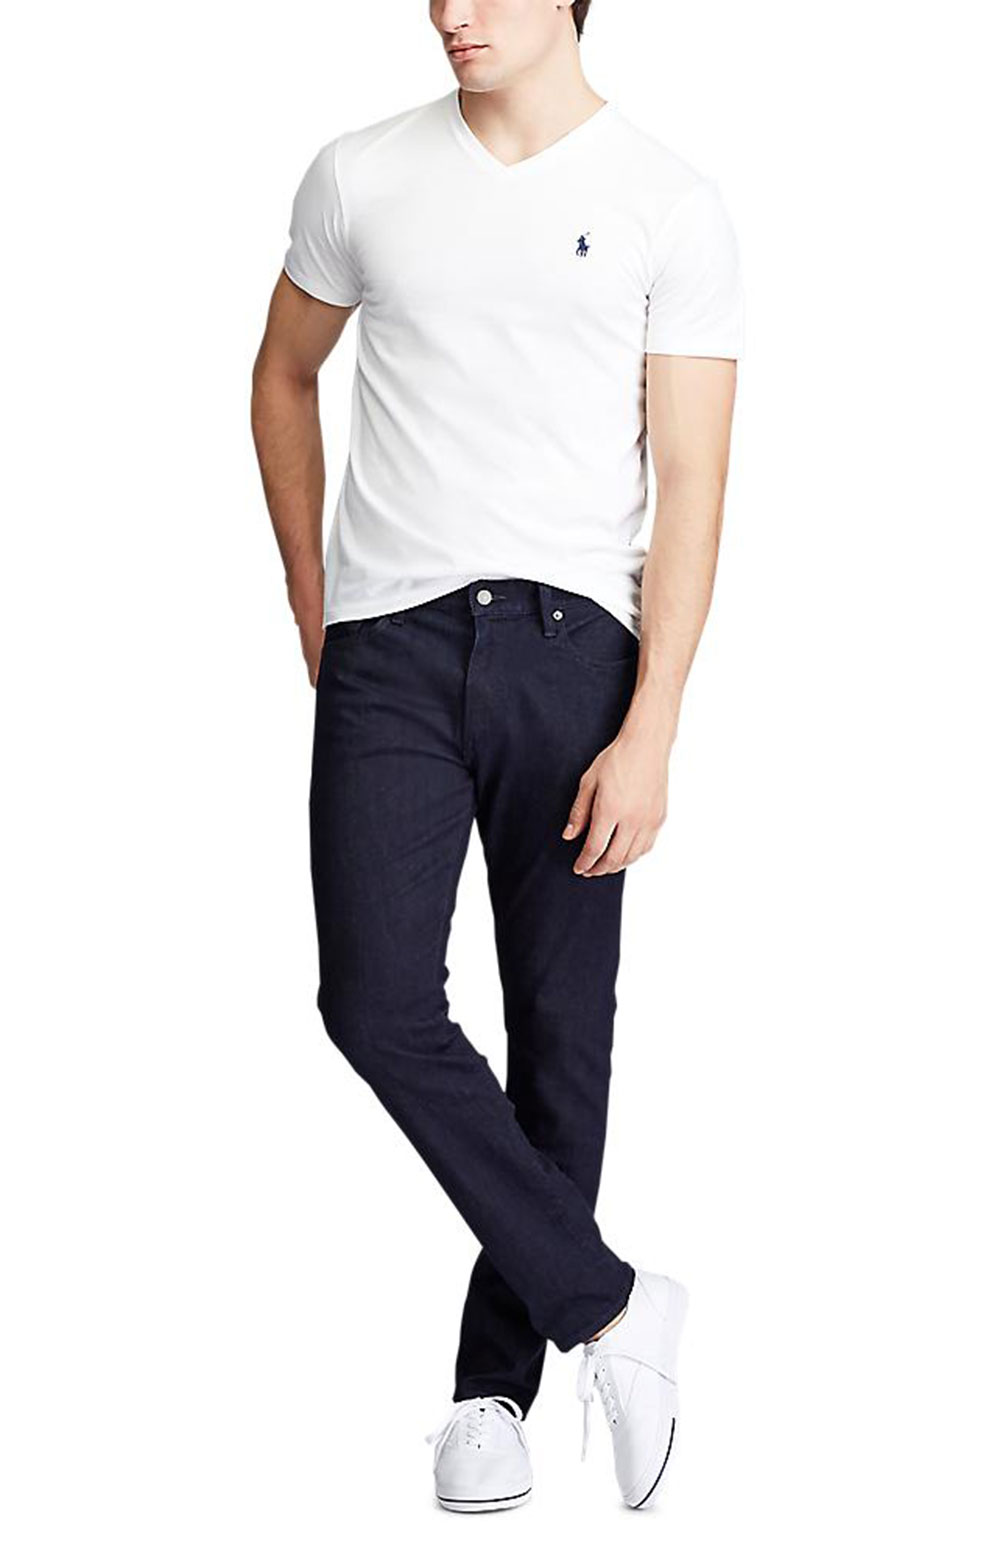 Varick Slim Straight Jeans - Miller Stretch BSR 2